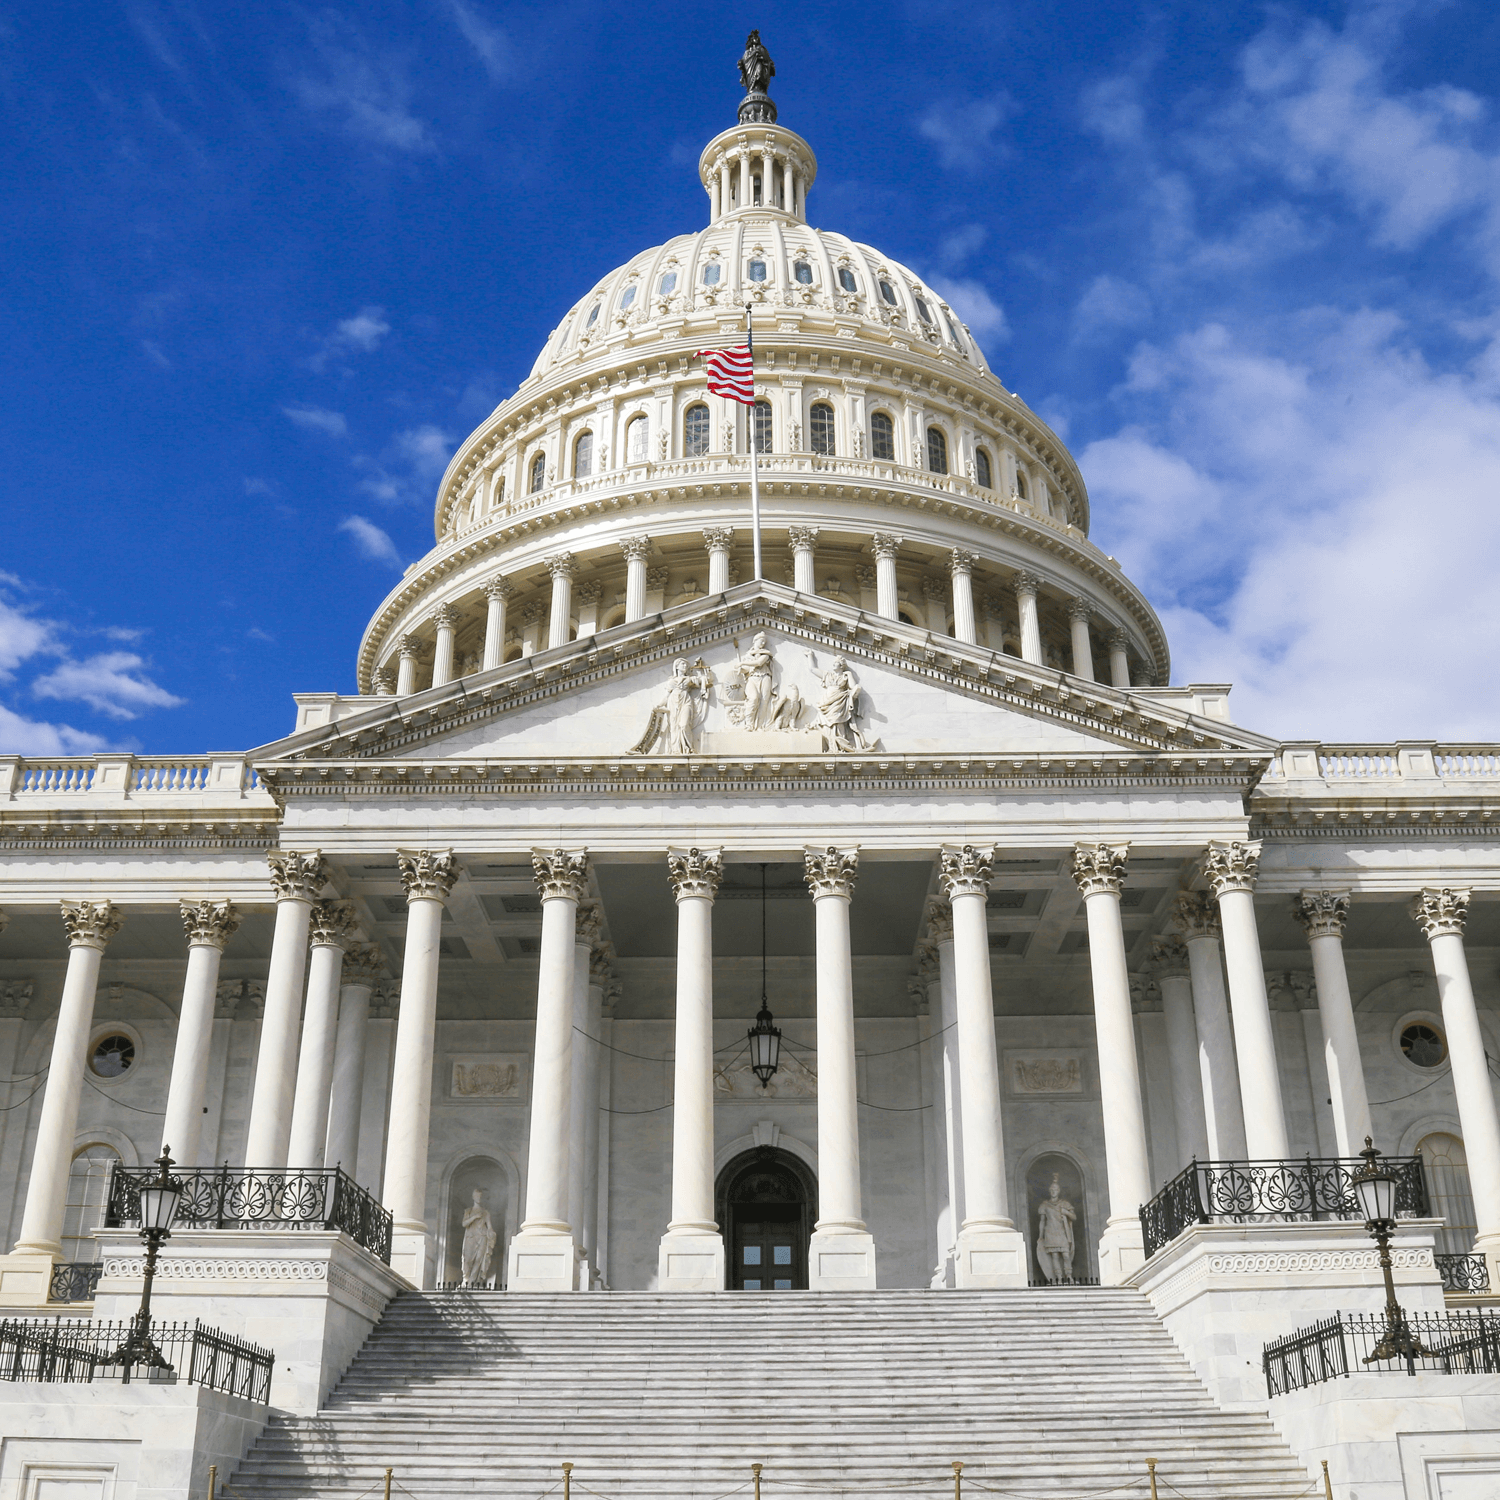 Congress, photo by Louis Velazquez, Unsplash